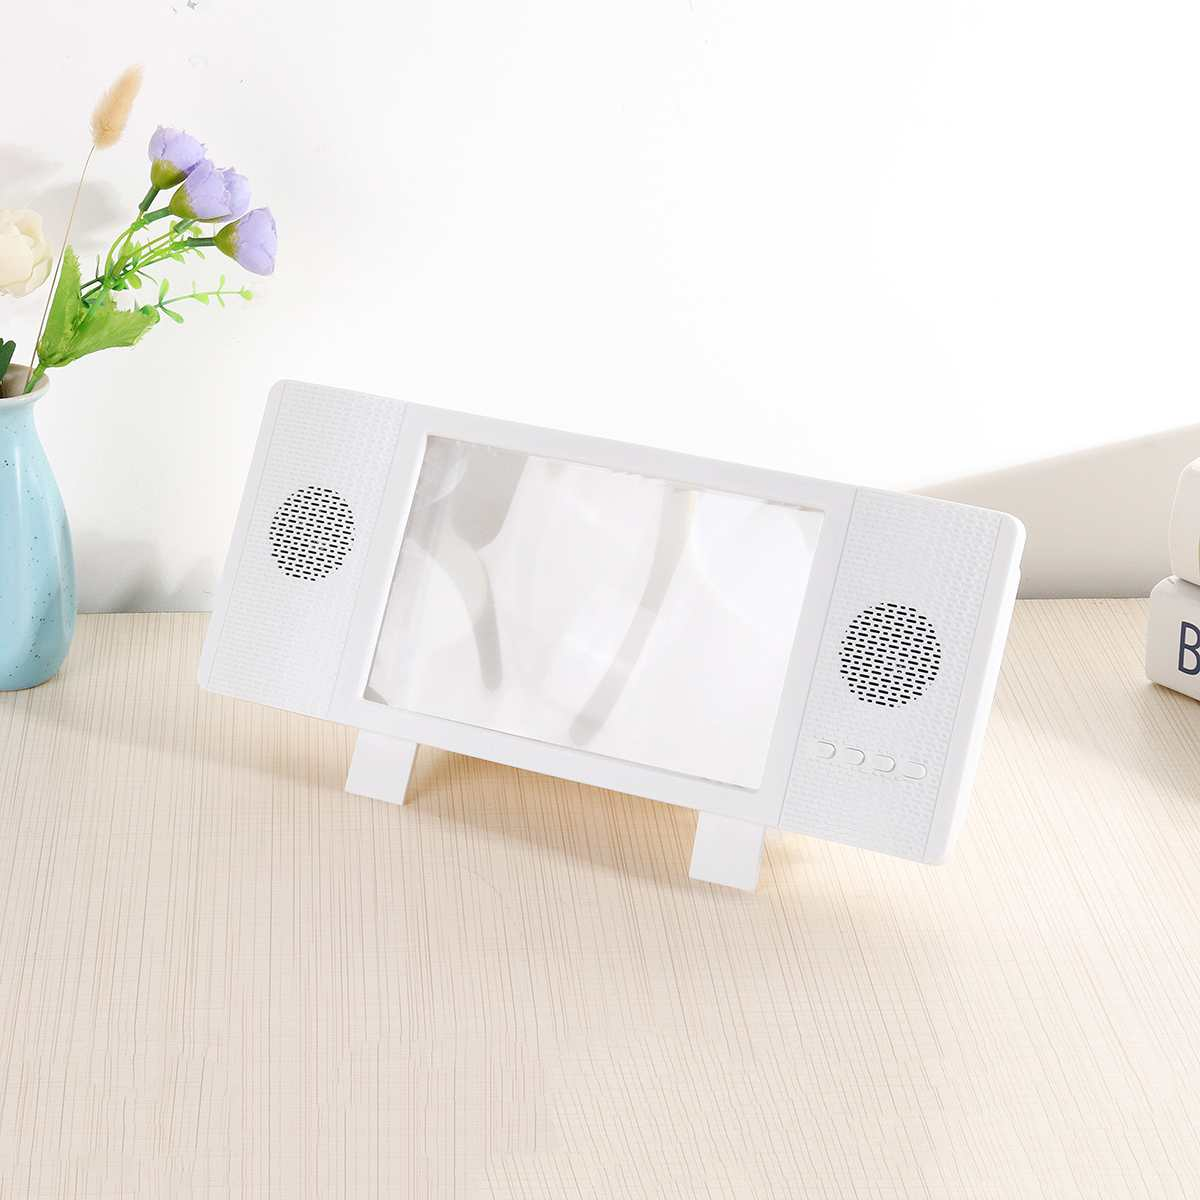 bluetooth speaker magnifying glass magnifier screen magnifier iphone bluetooth speaker phone magnifier phone screen magnifier magnifying glass on phone magnifying glass iphone magnifying glass for android